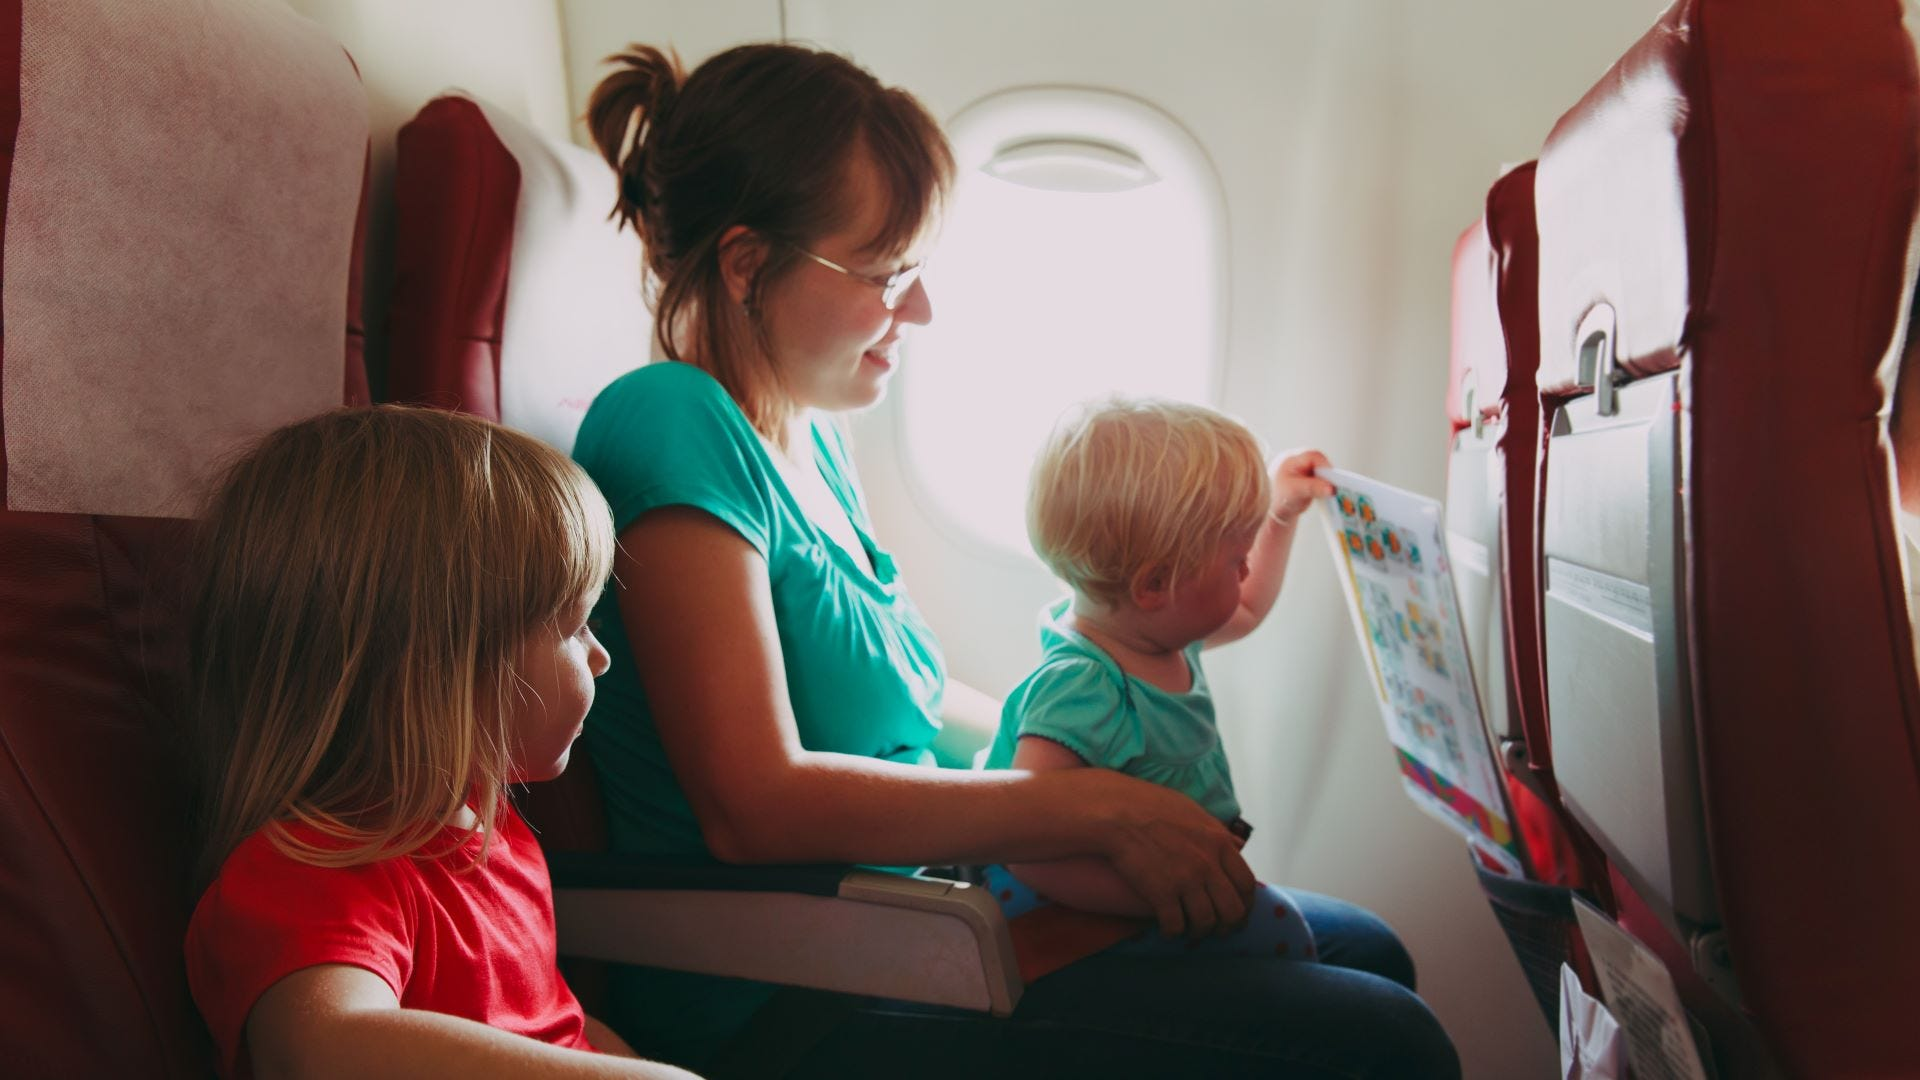 A woman on a plane holding a toddler with an older child in the seat next to her.